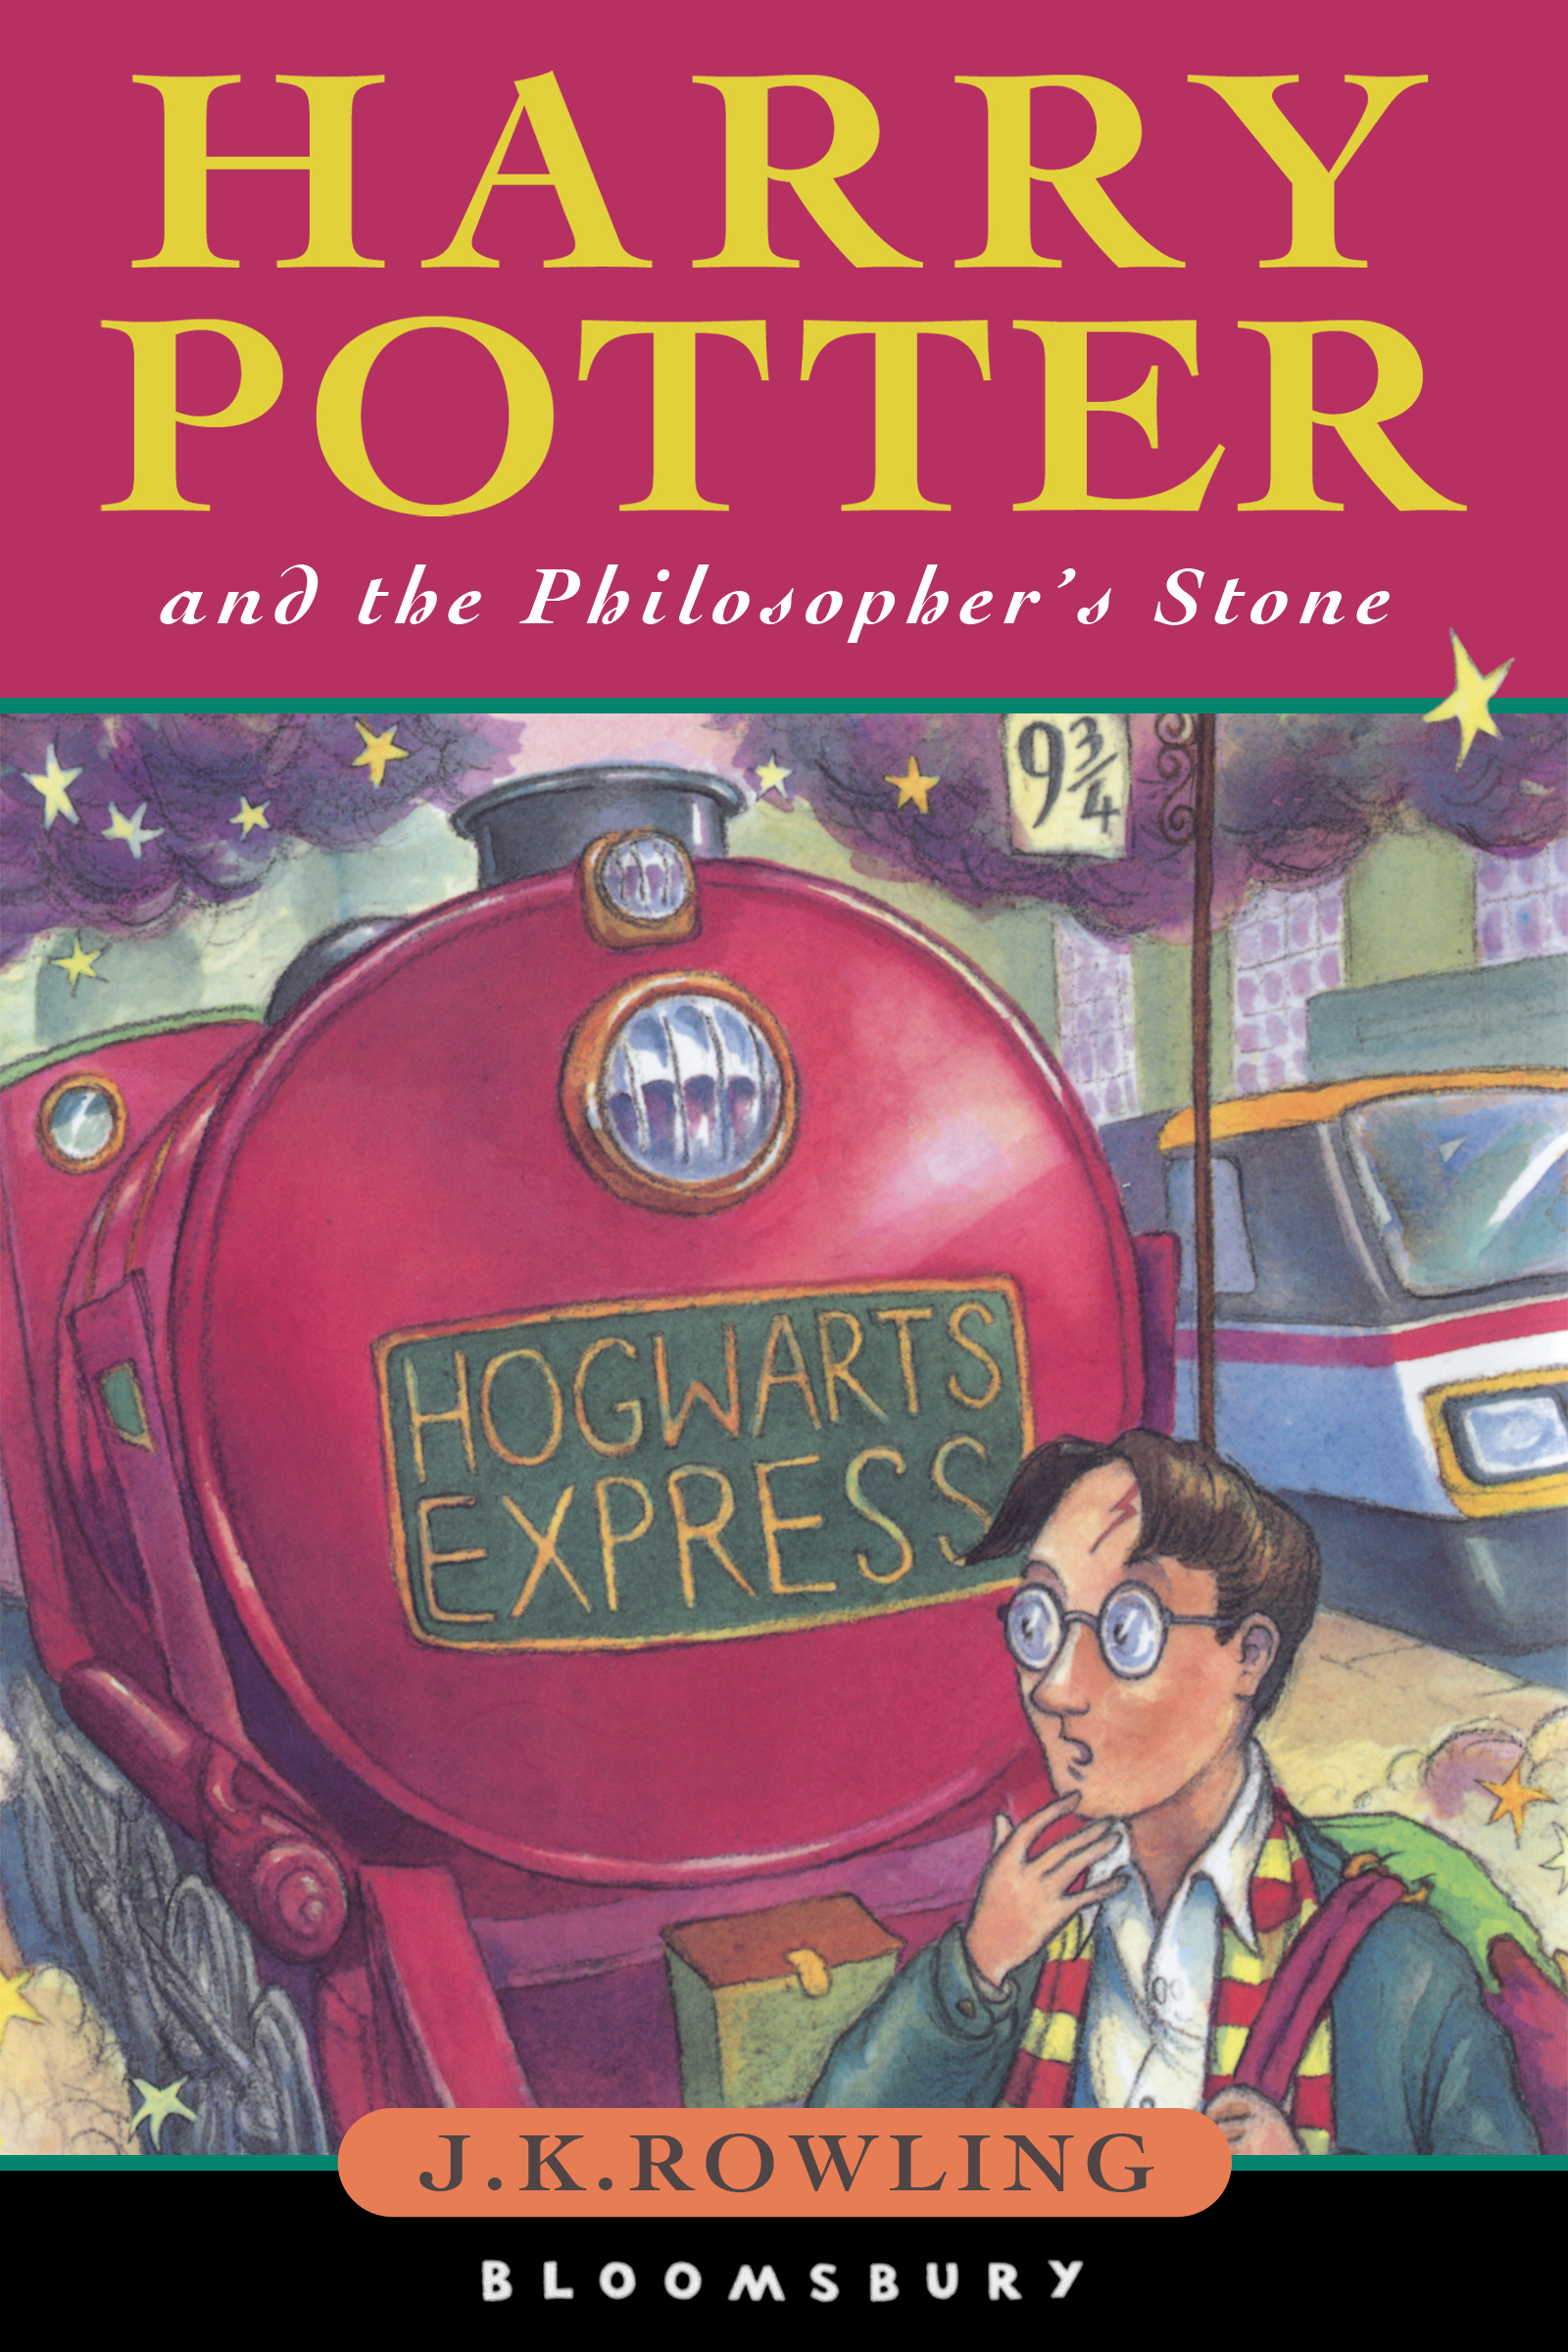 Harry Potter Book First Edition : Harry potter books with a rare typo are being valued at £